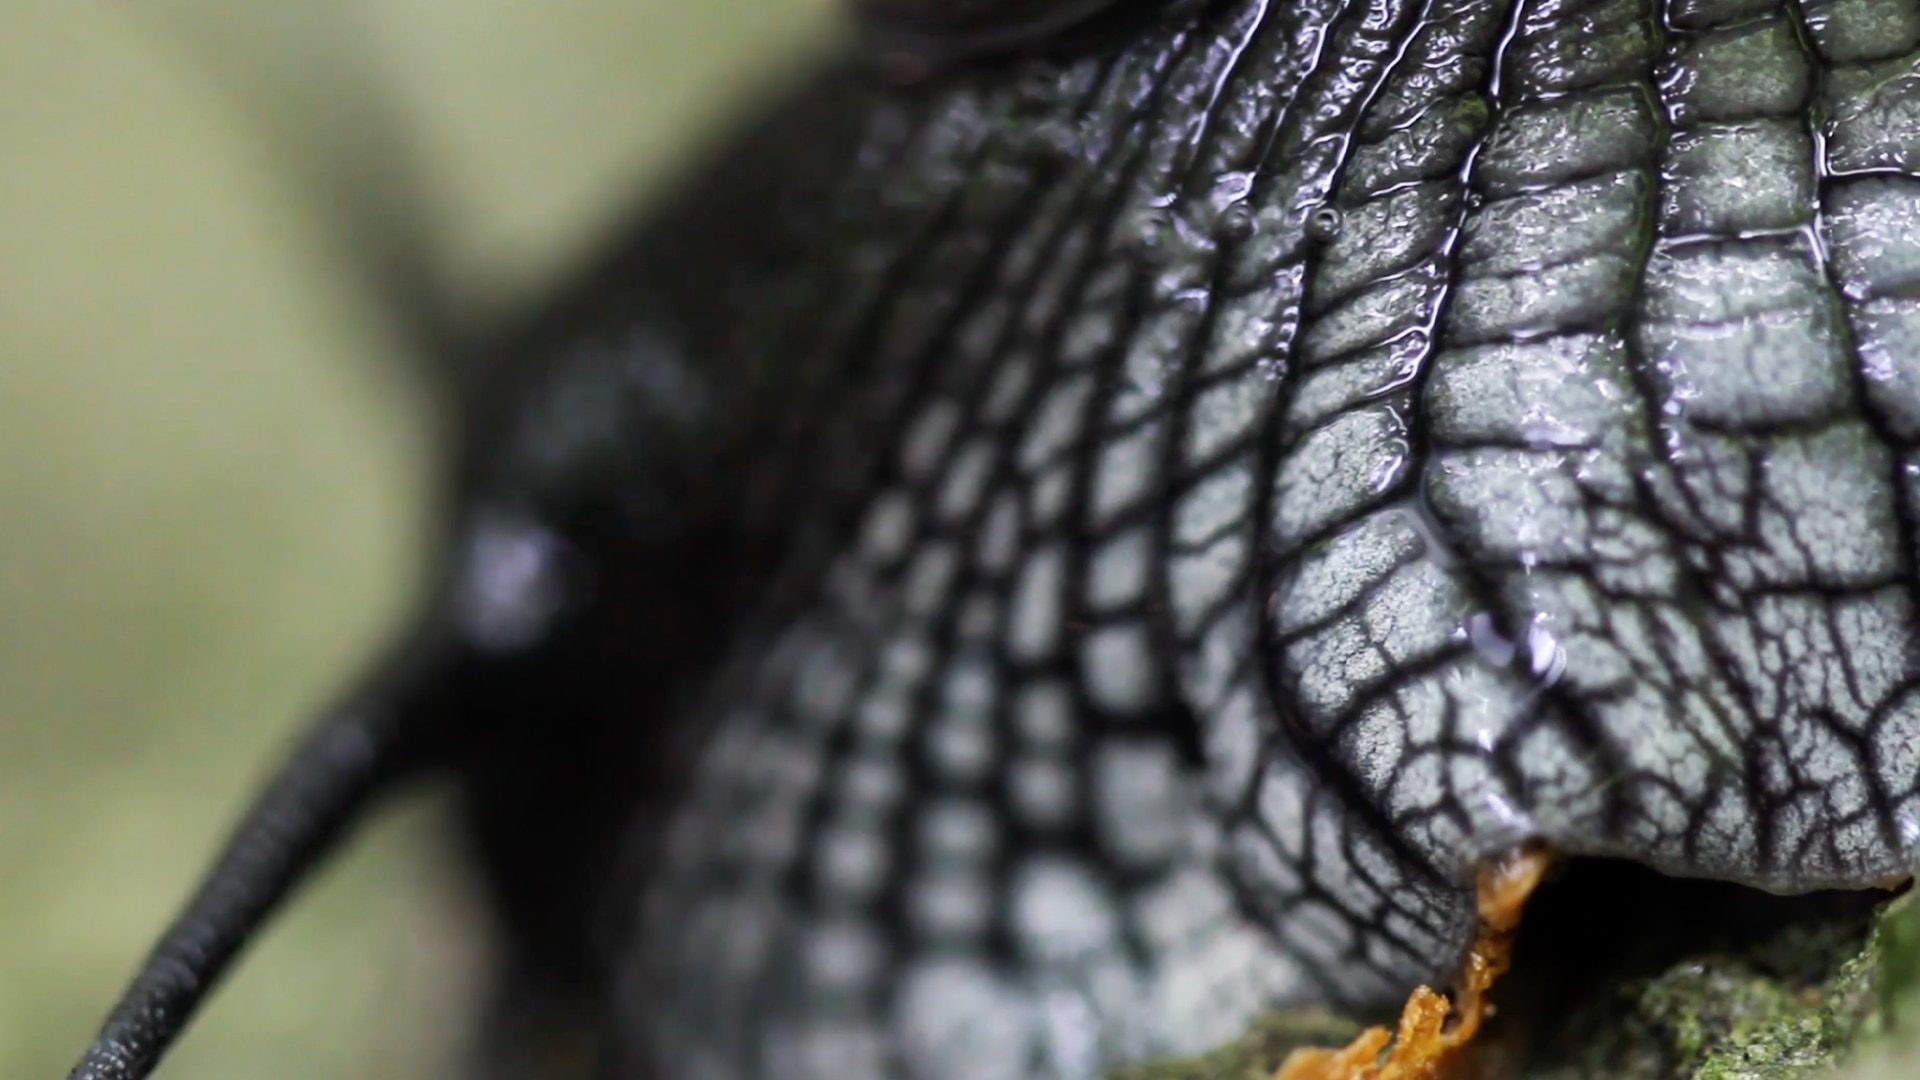 Extreme close up of snail